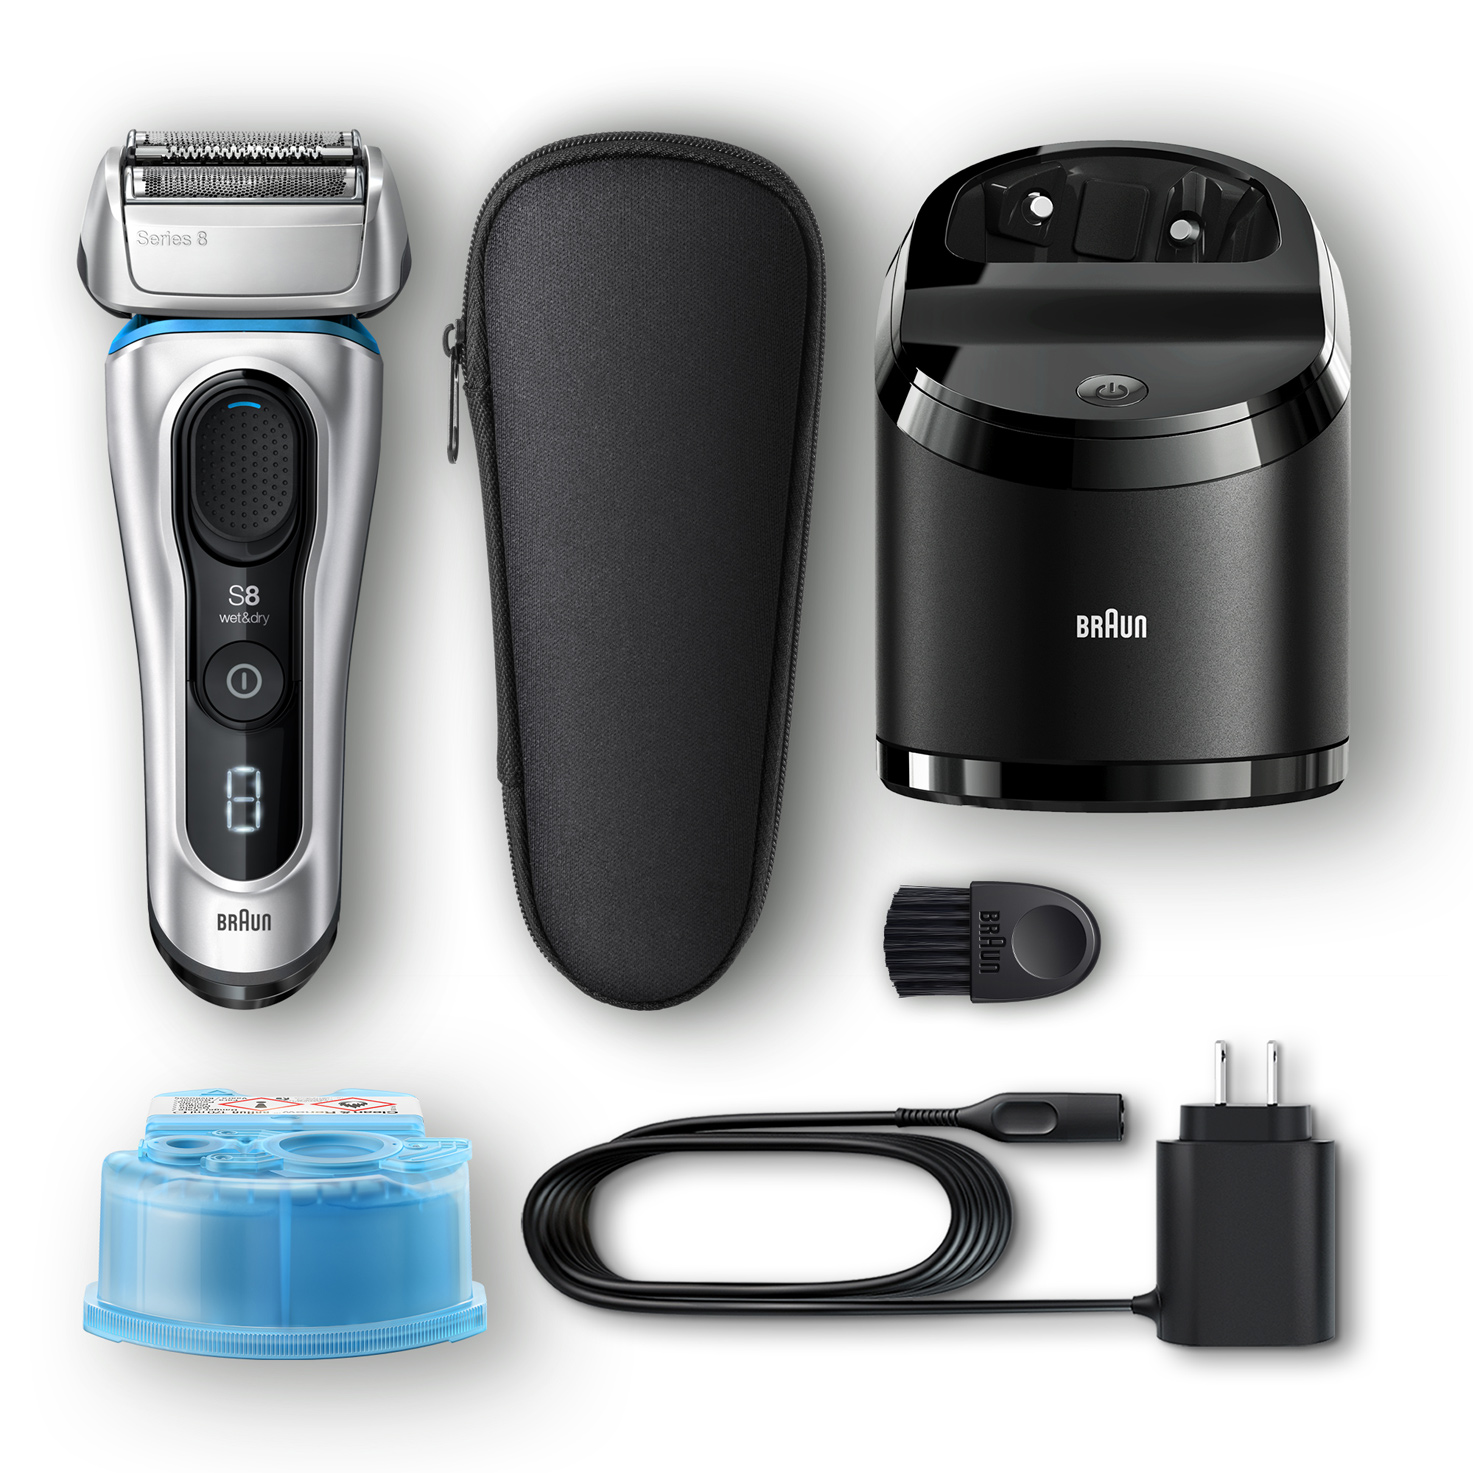 Series 8 8370cc shaver - What´s in the box